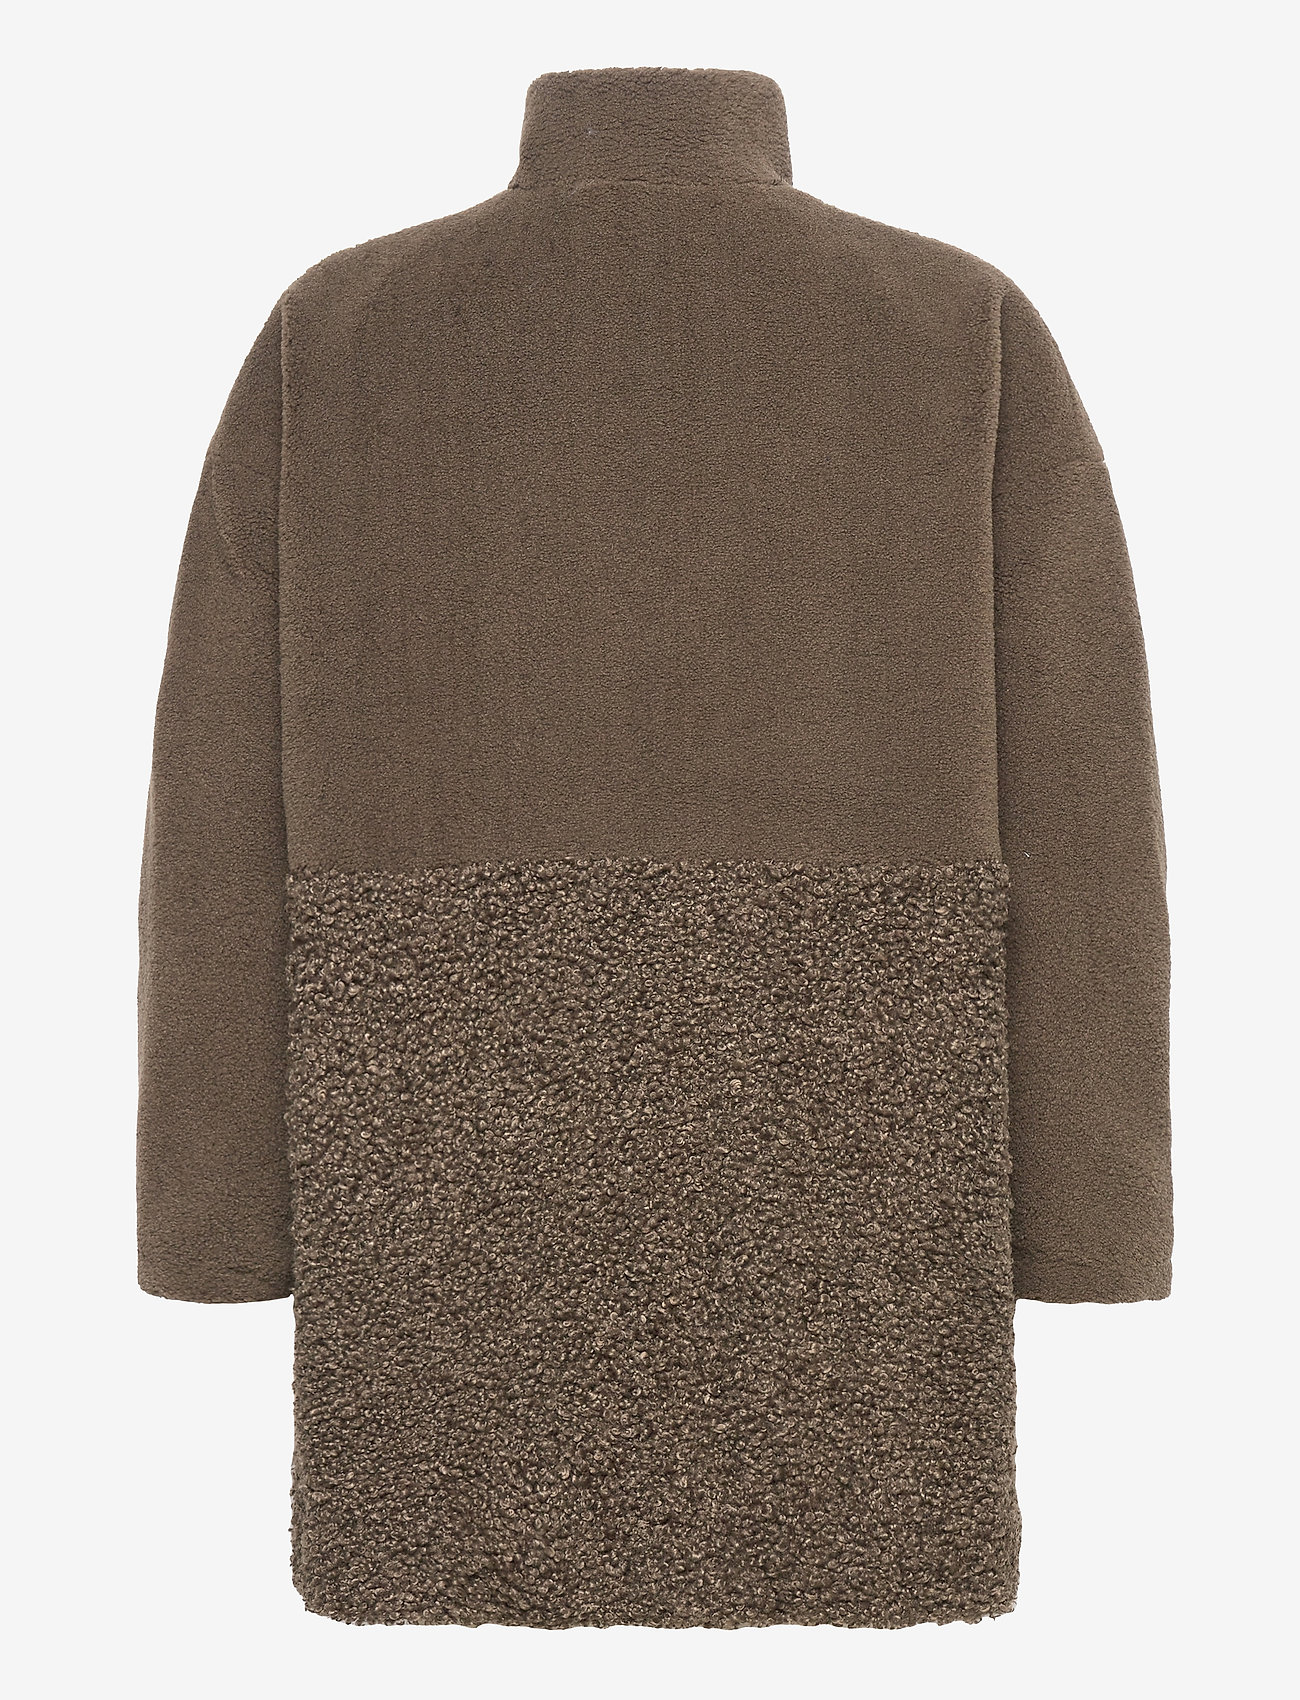 Irenea Faux Fur Coat (Loden Green) (255 €) - French Connection bLnSY